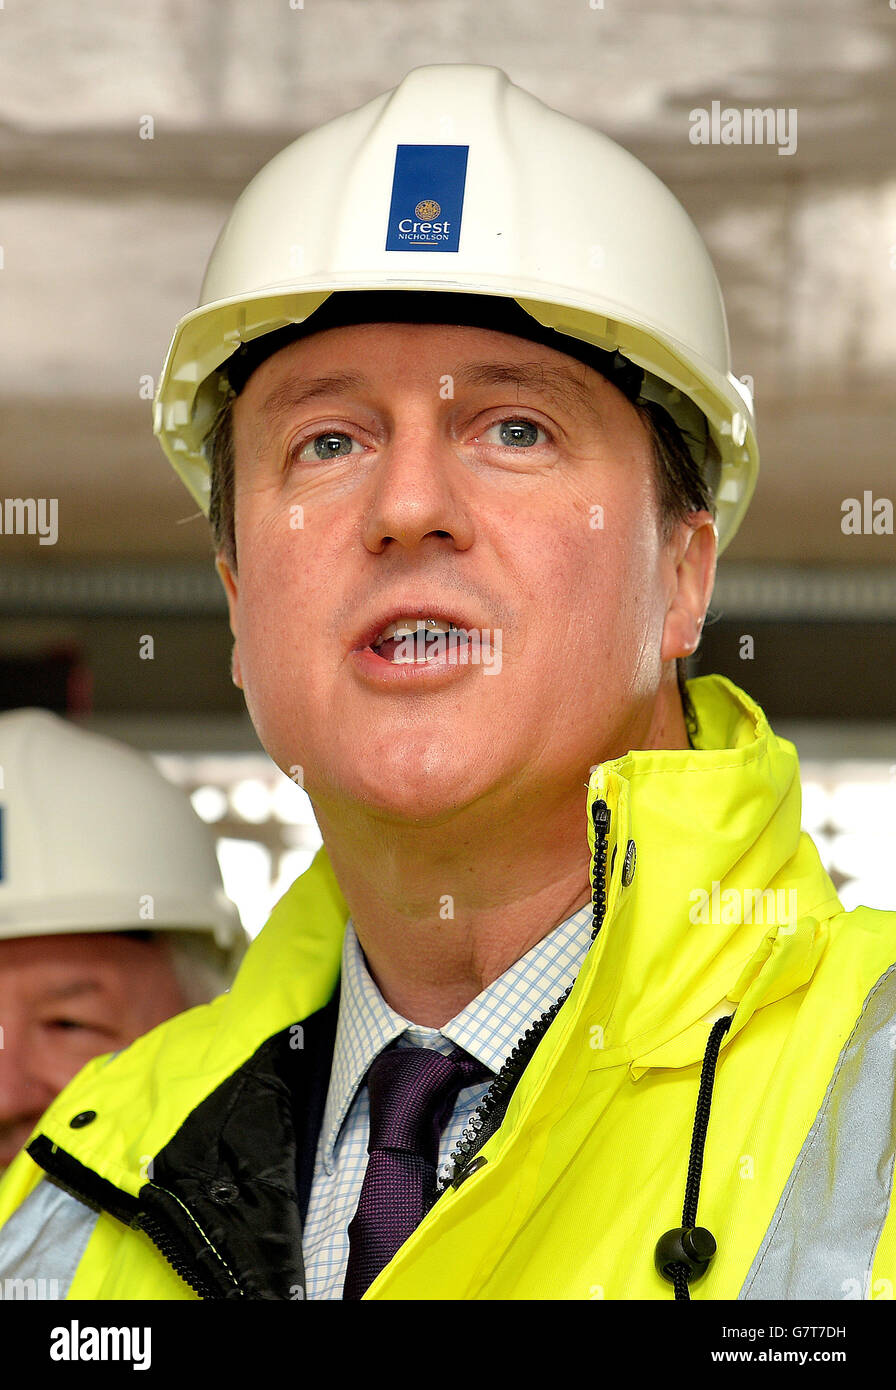 Prime Minister David Cameron wearing a hard hat and high visibility jacket, during a visit to a building site where they are constructing private flats in Isleworth, west London. Stock Photo